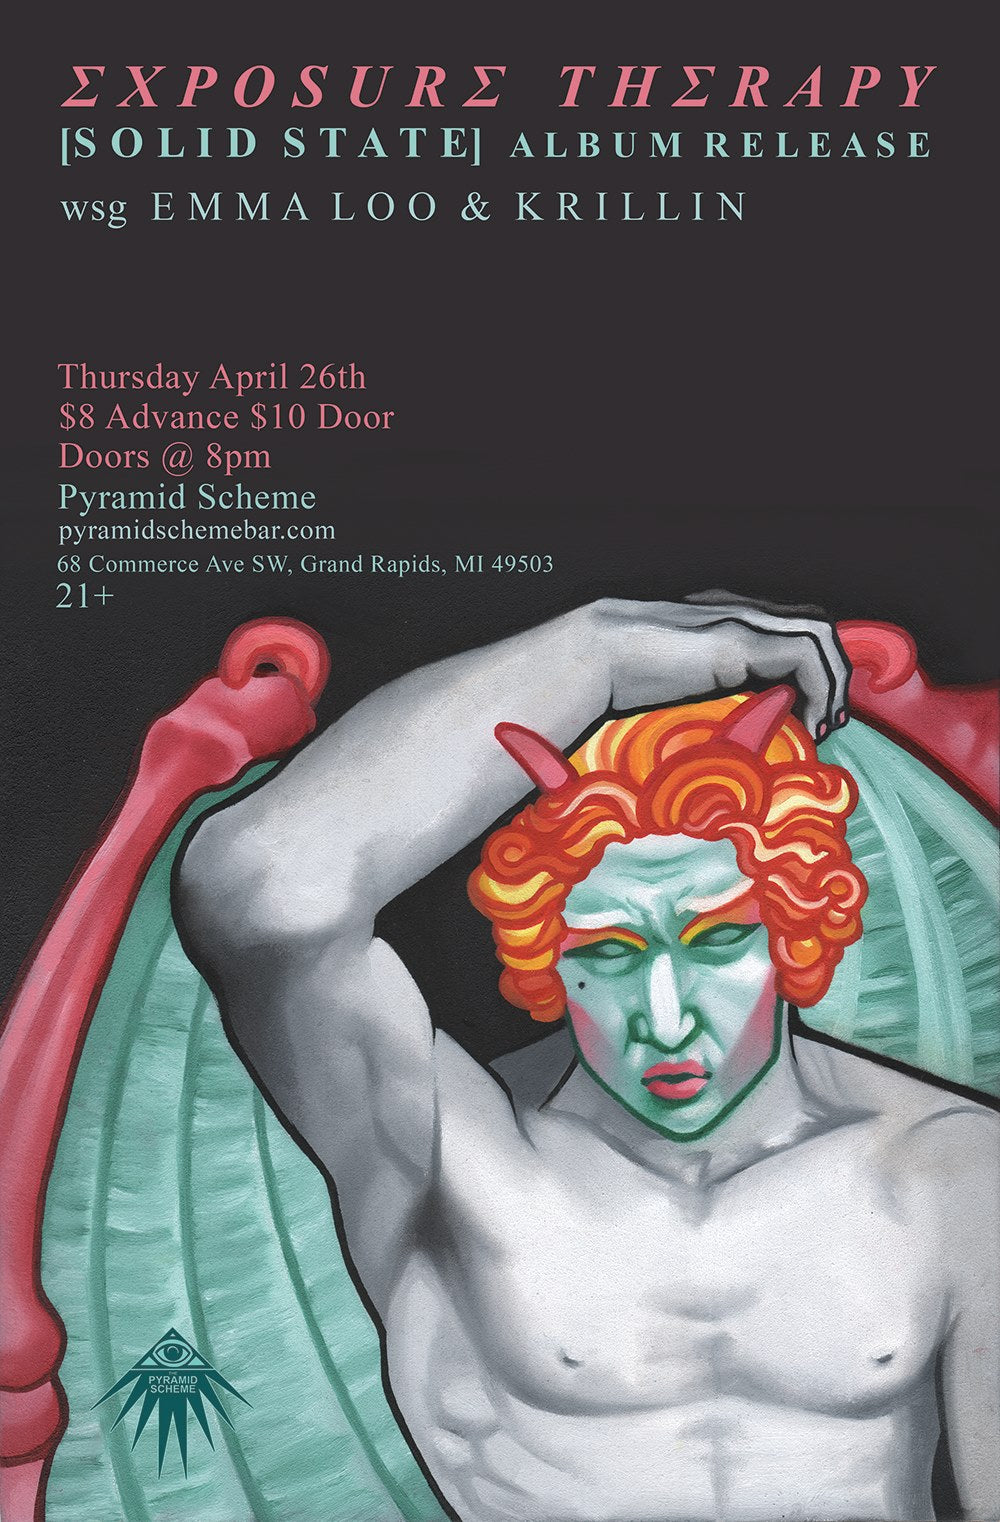 Exposure Therapy Show Poster.